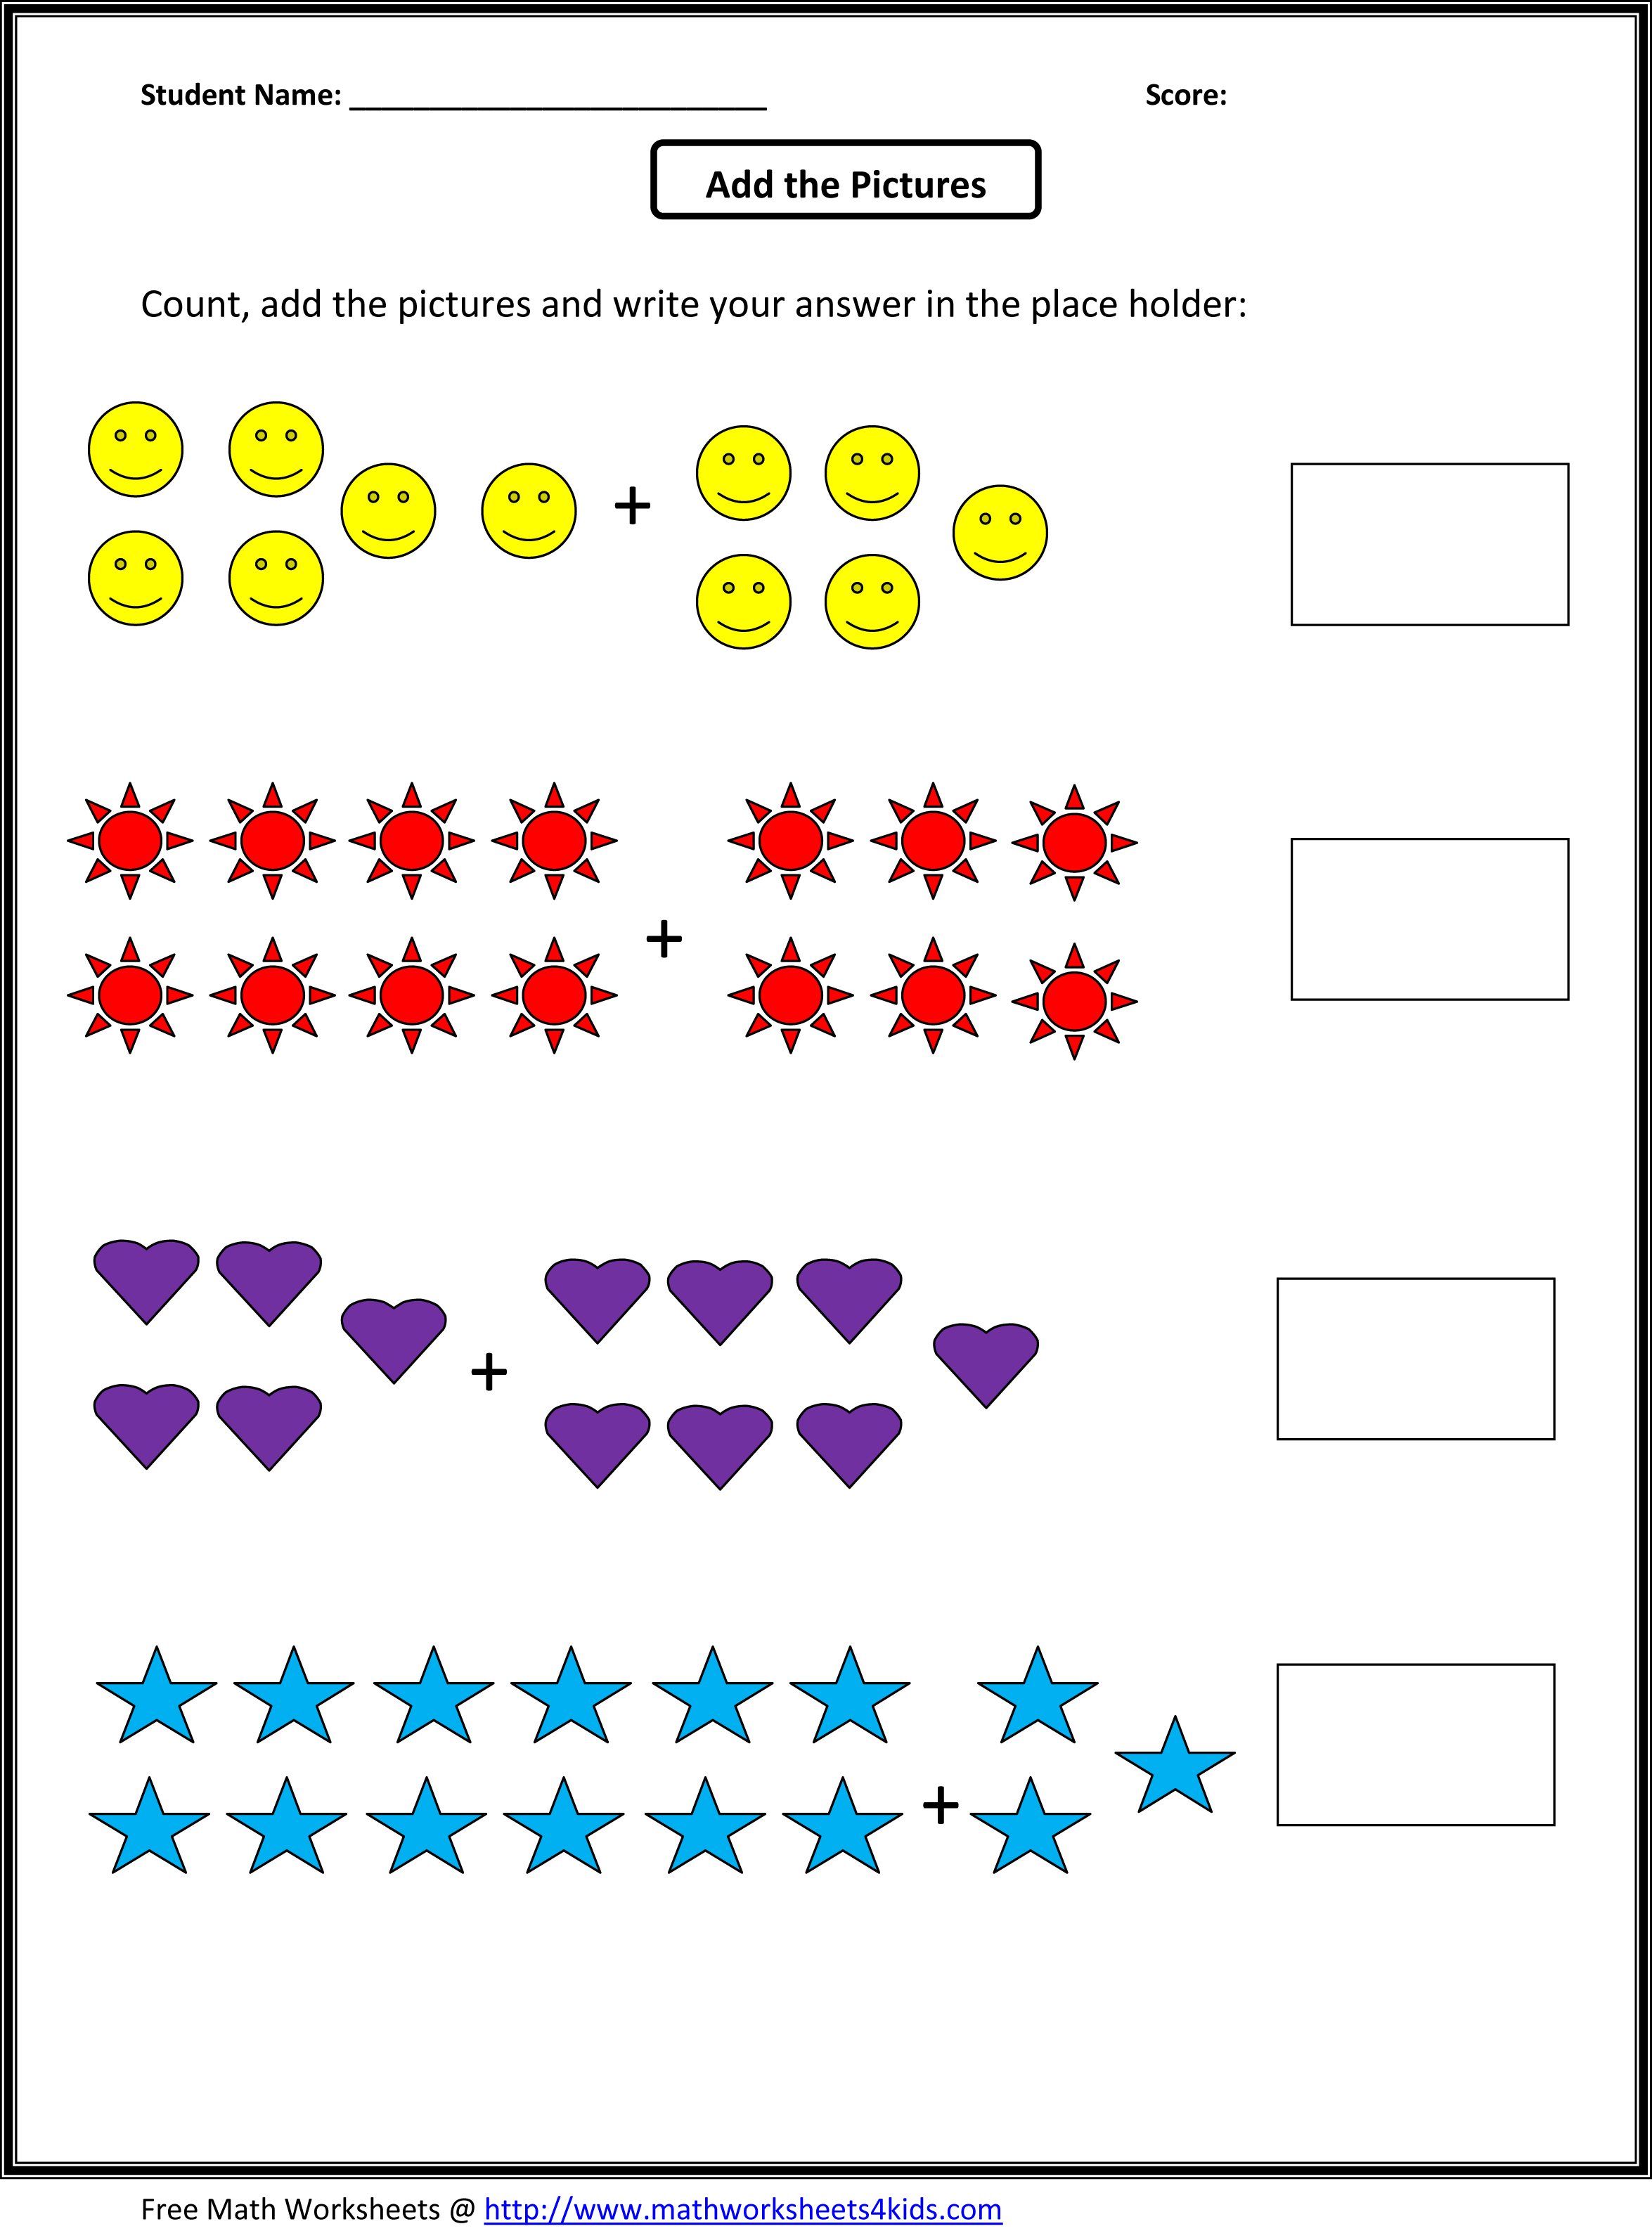 Proatmealus  Marvelous Grade  Maths Worksheet  Reocurent With Fair Math Worksheets For St Grade Free  Reocurent With Appealing Modal Verbs Worksheets Also Math Worksheets Proportions In Addition Algebra Tile Worksheets And Free Printable Letter E Worksheets As Well As Identifying Sentence Types Worksheet Additionally Russian Alphabet Worksheet From Reocurentcom With Proatmealus  Fair Grade  Maths Worksheet  Reocurent With Appealing Math Worksheets For St Grade Free  Reocurent And Marvelous Modal Verbs Worksheets Also Math Worksheets Proportions In Addition Algebra Tile Worksheets From Reocurentcom